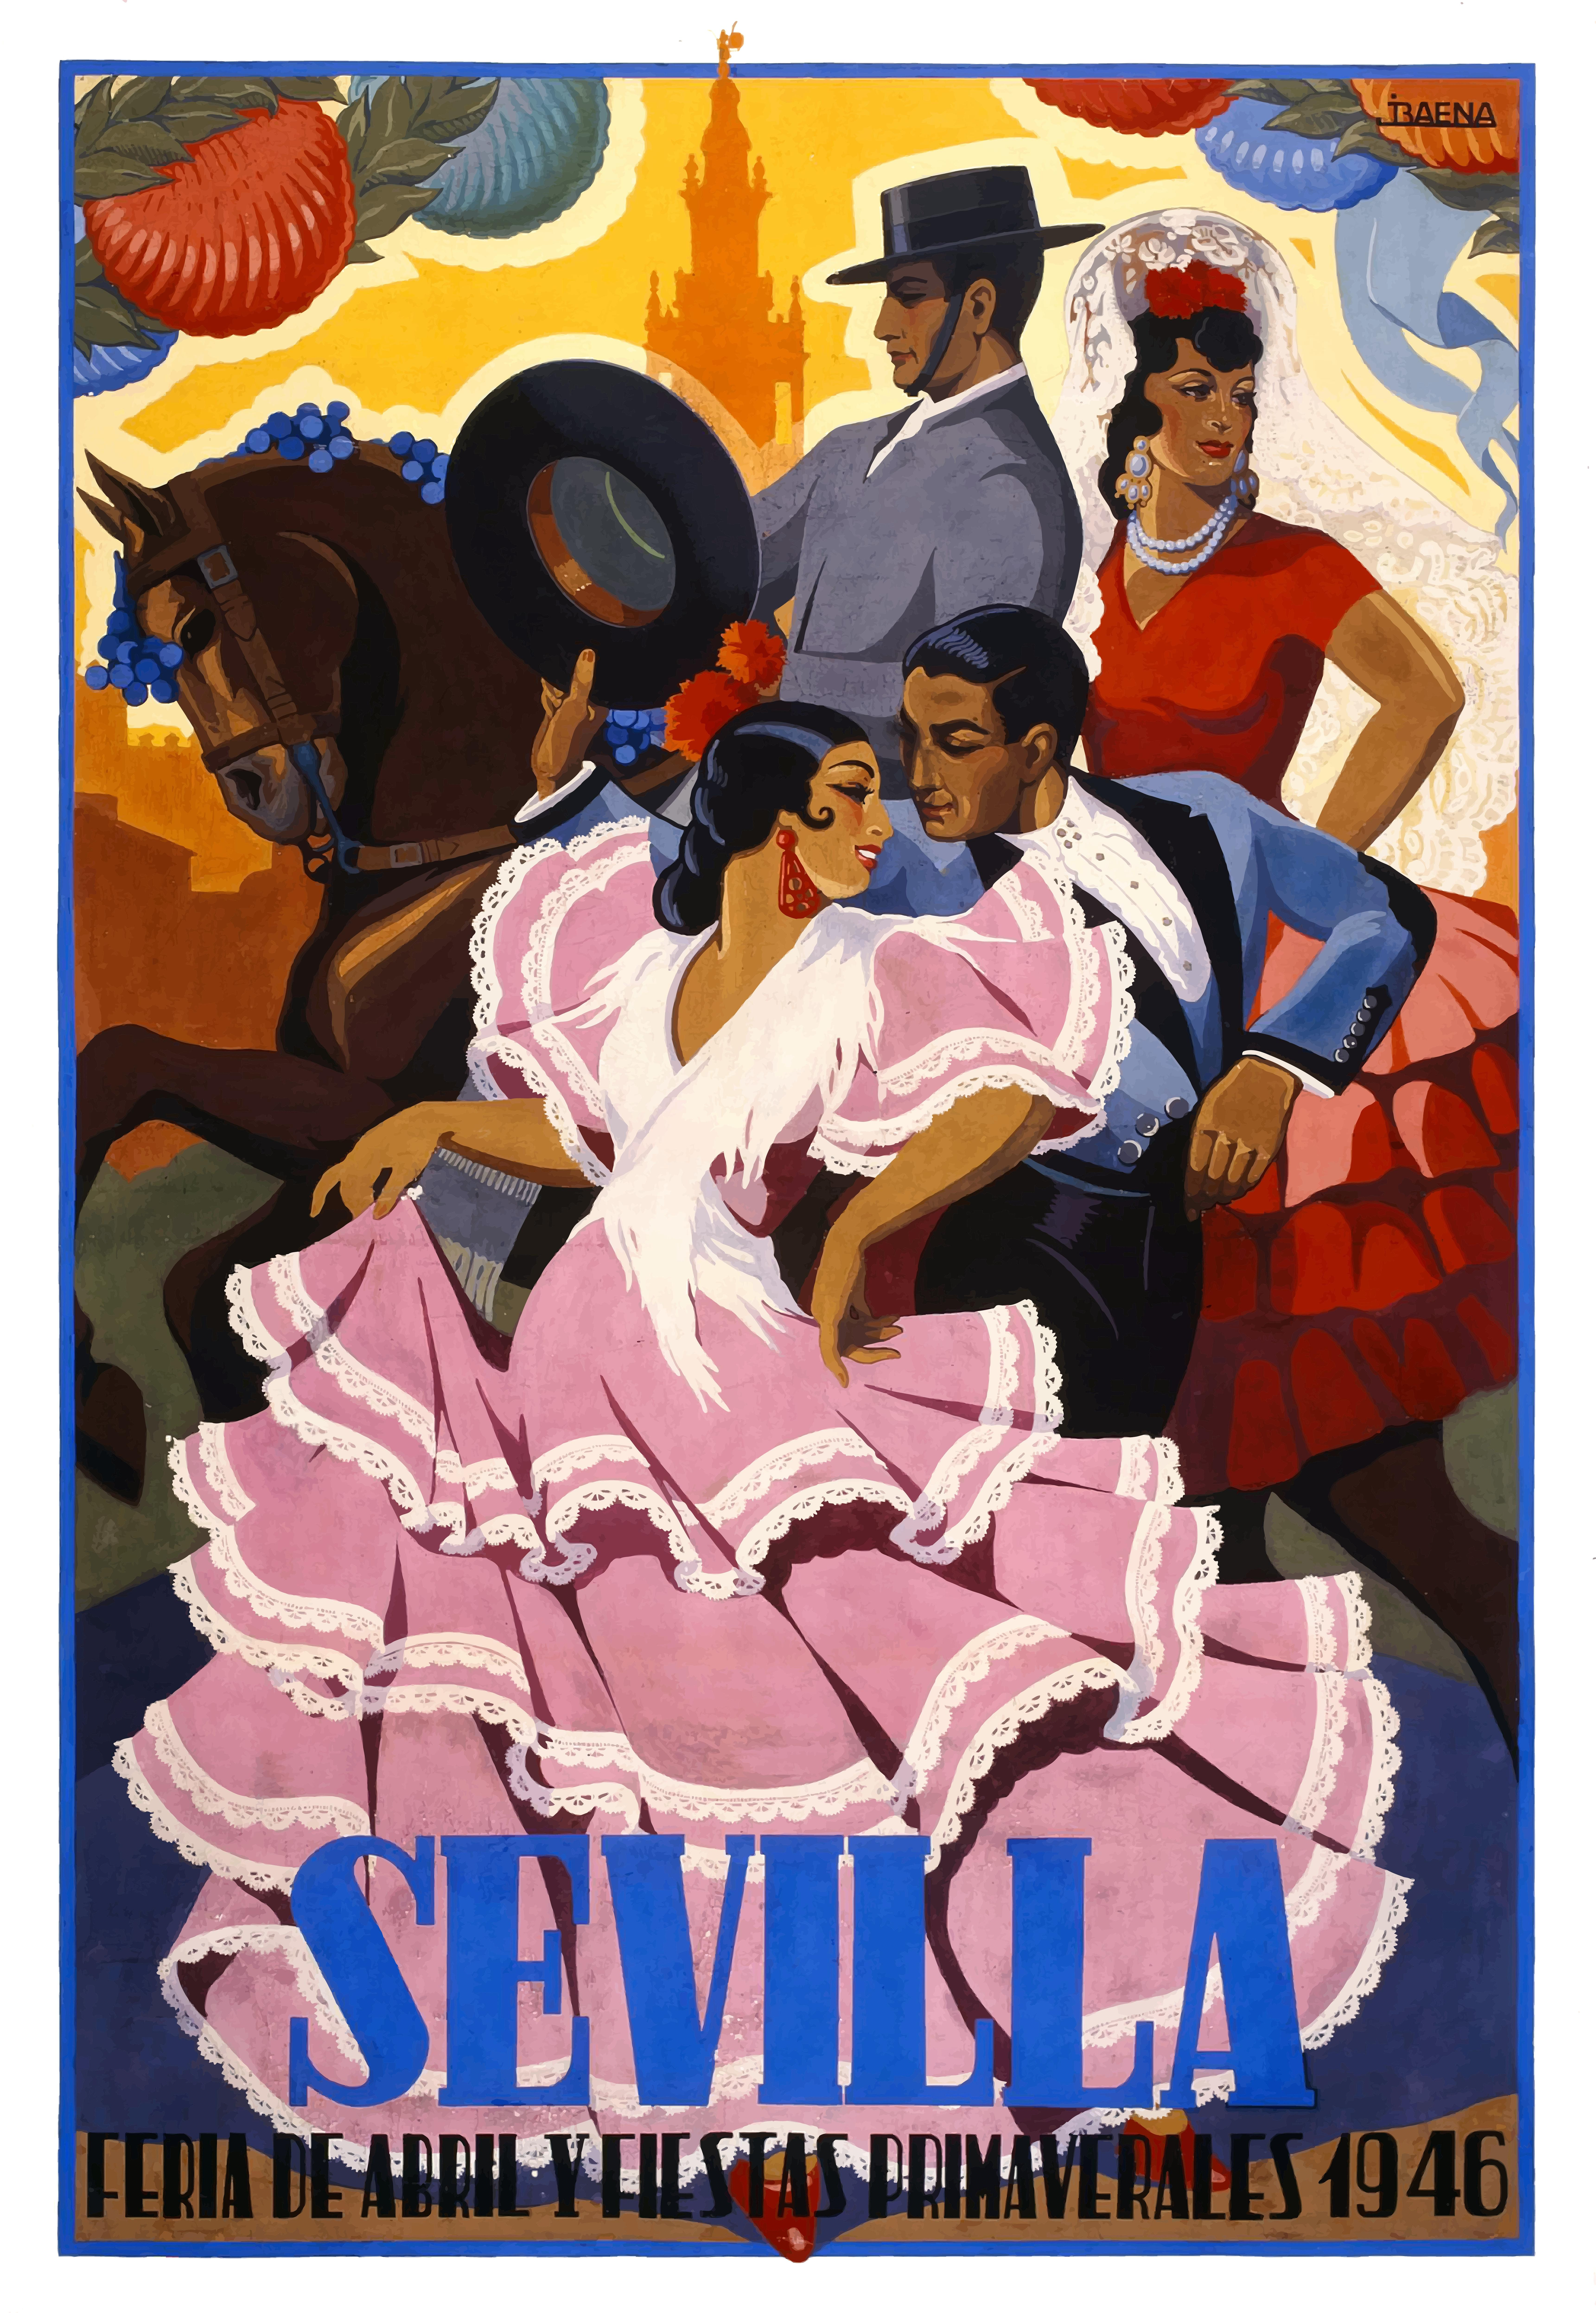 SPAIN VINTAGE TRAVEL POSTER Rare Hot New 3